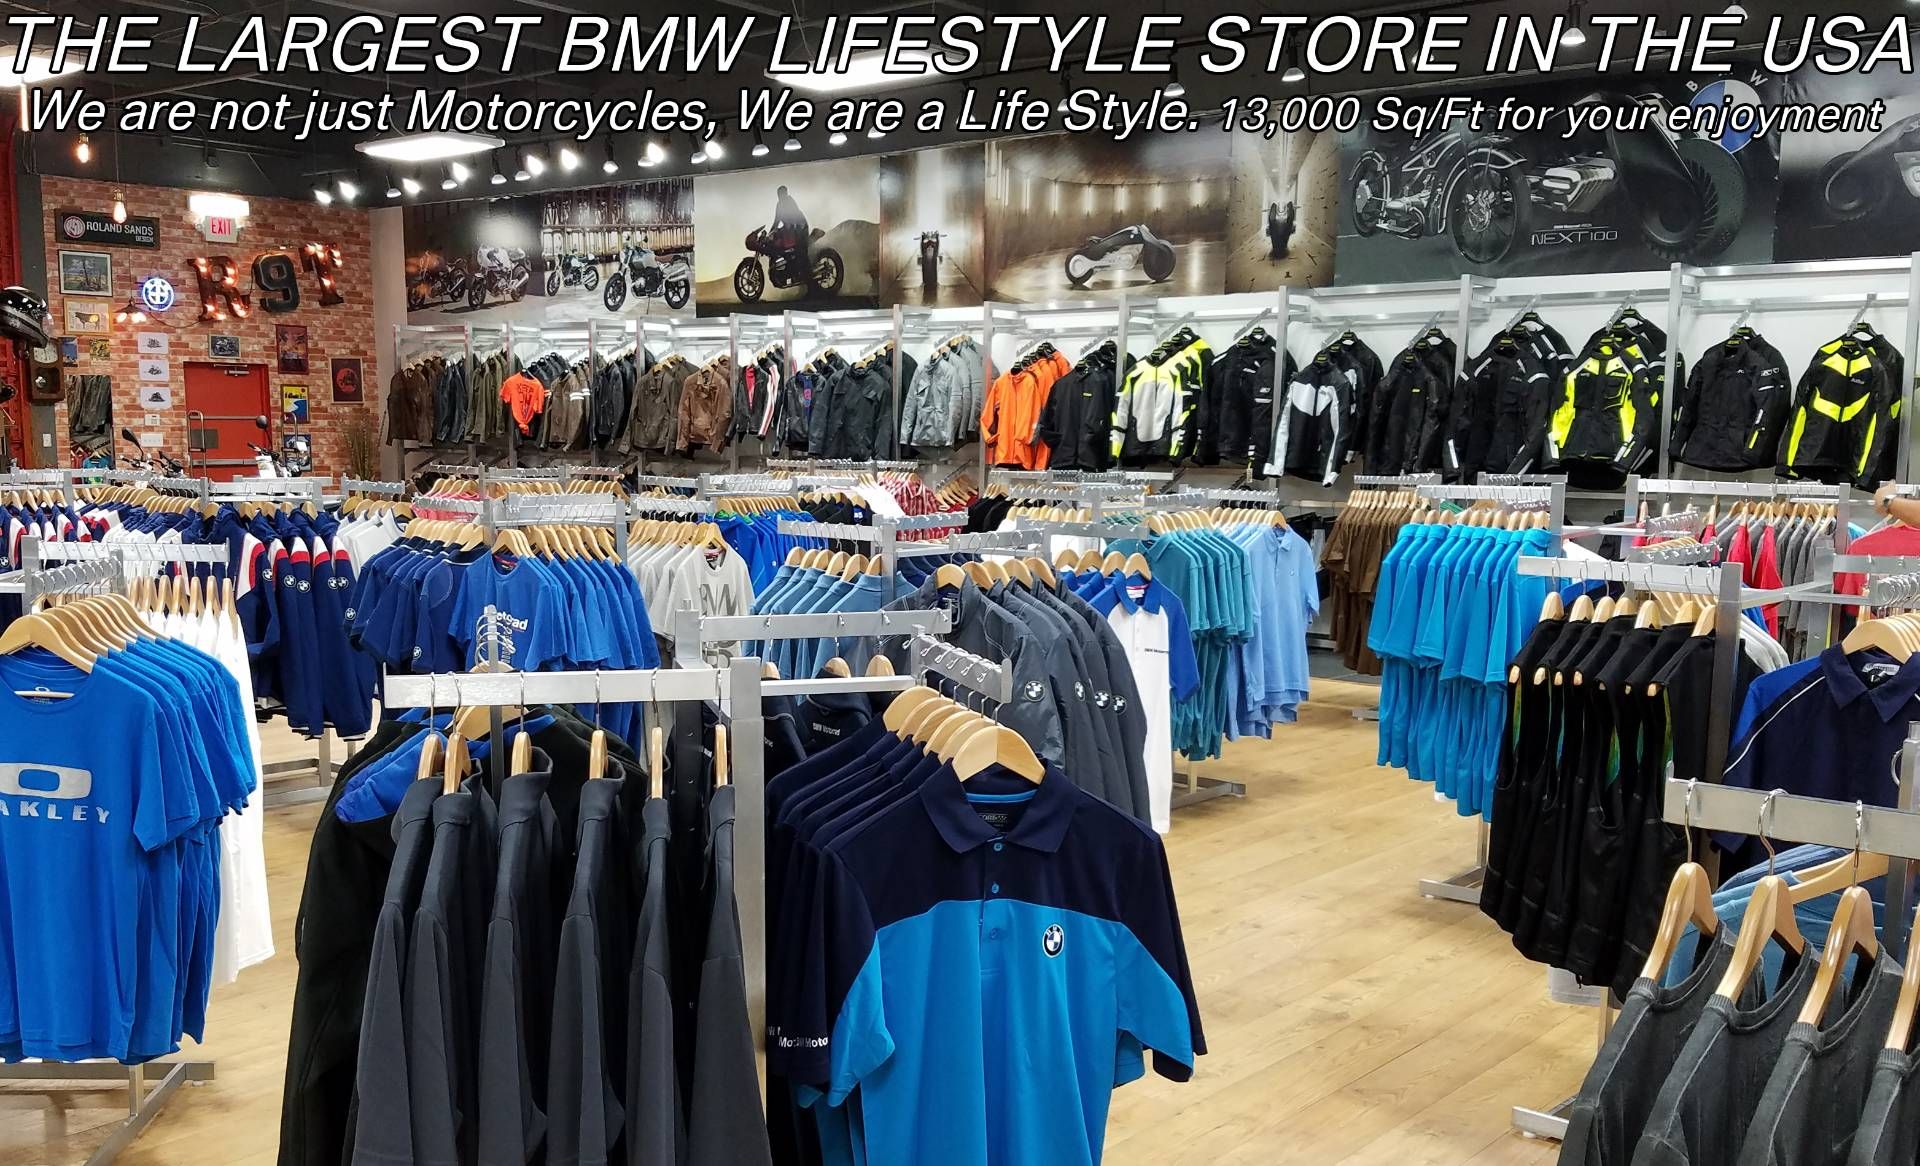 New 2019 BMW R 1250 GS for sale, New BMW for sale R 1250GS, New BMW Motorcycle R1250GS for sale, new BMW 1250GS, R1250GS, GS. BMW Motorcycles of Miami, Motorcycles of Miami, Motorcycles Miami, New Motorcycles, Used Motorcycles, pre-owned. #BMWMotorcyclesOfMiami #MotorcyclesOfMiami. - Photo 38